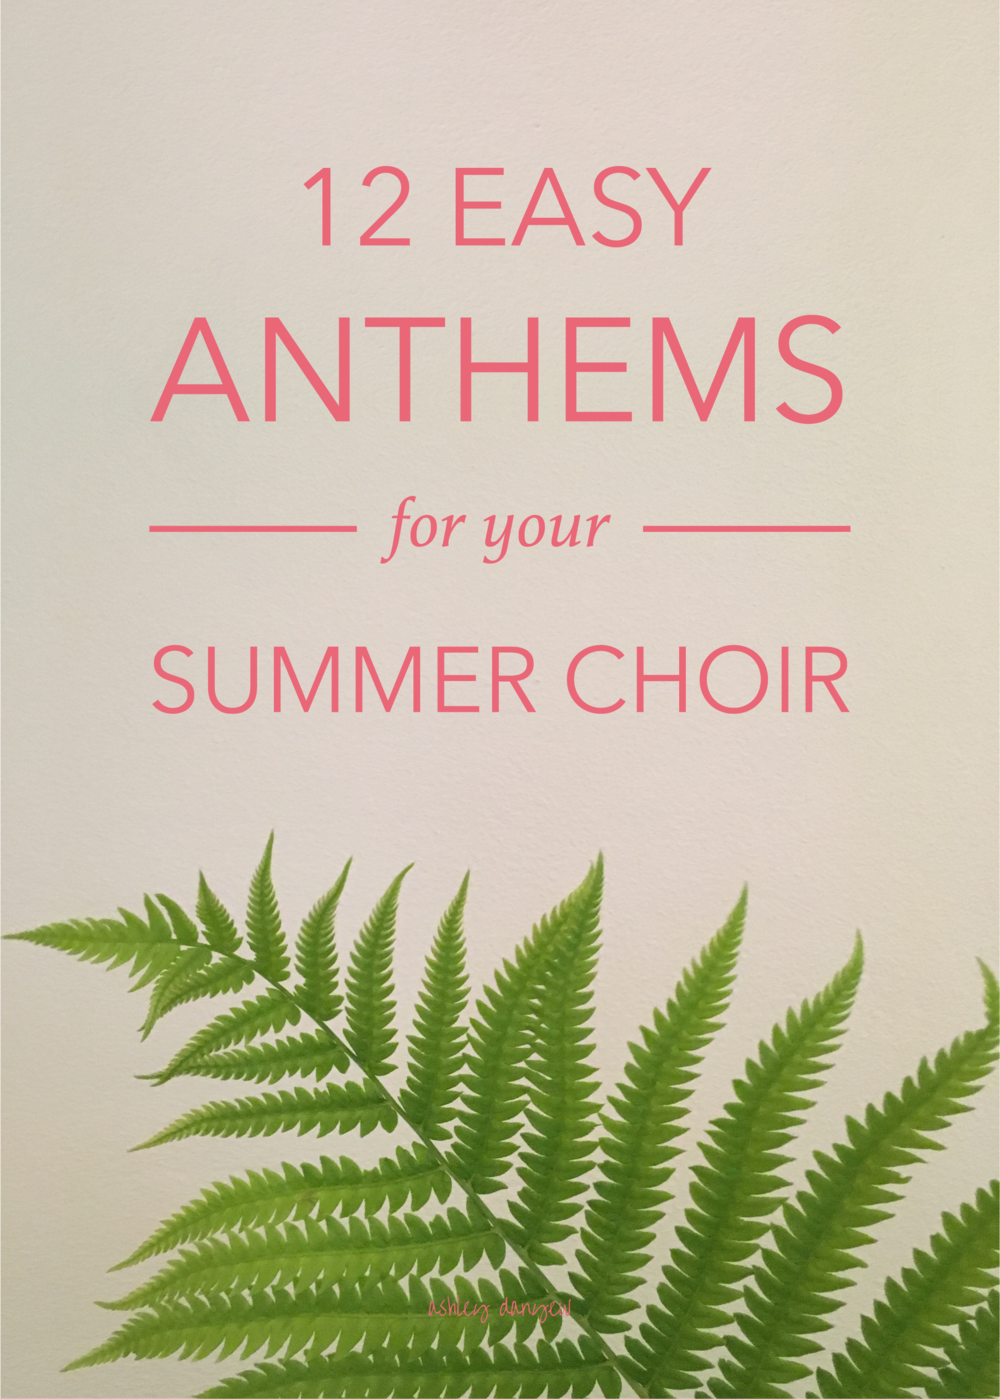 12 Easy Anthems for Your Summer Choir-06.png